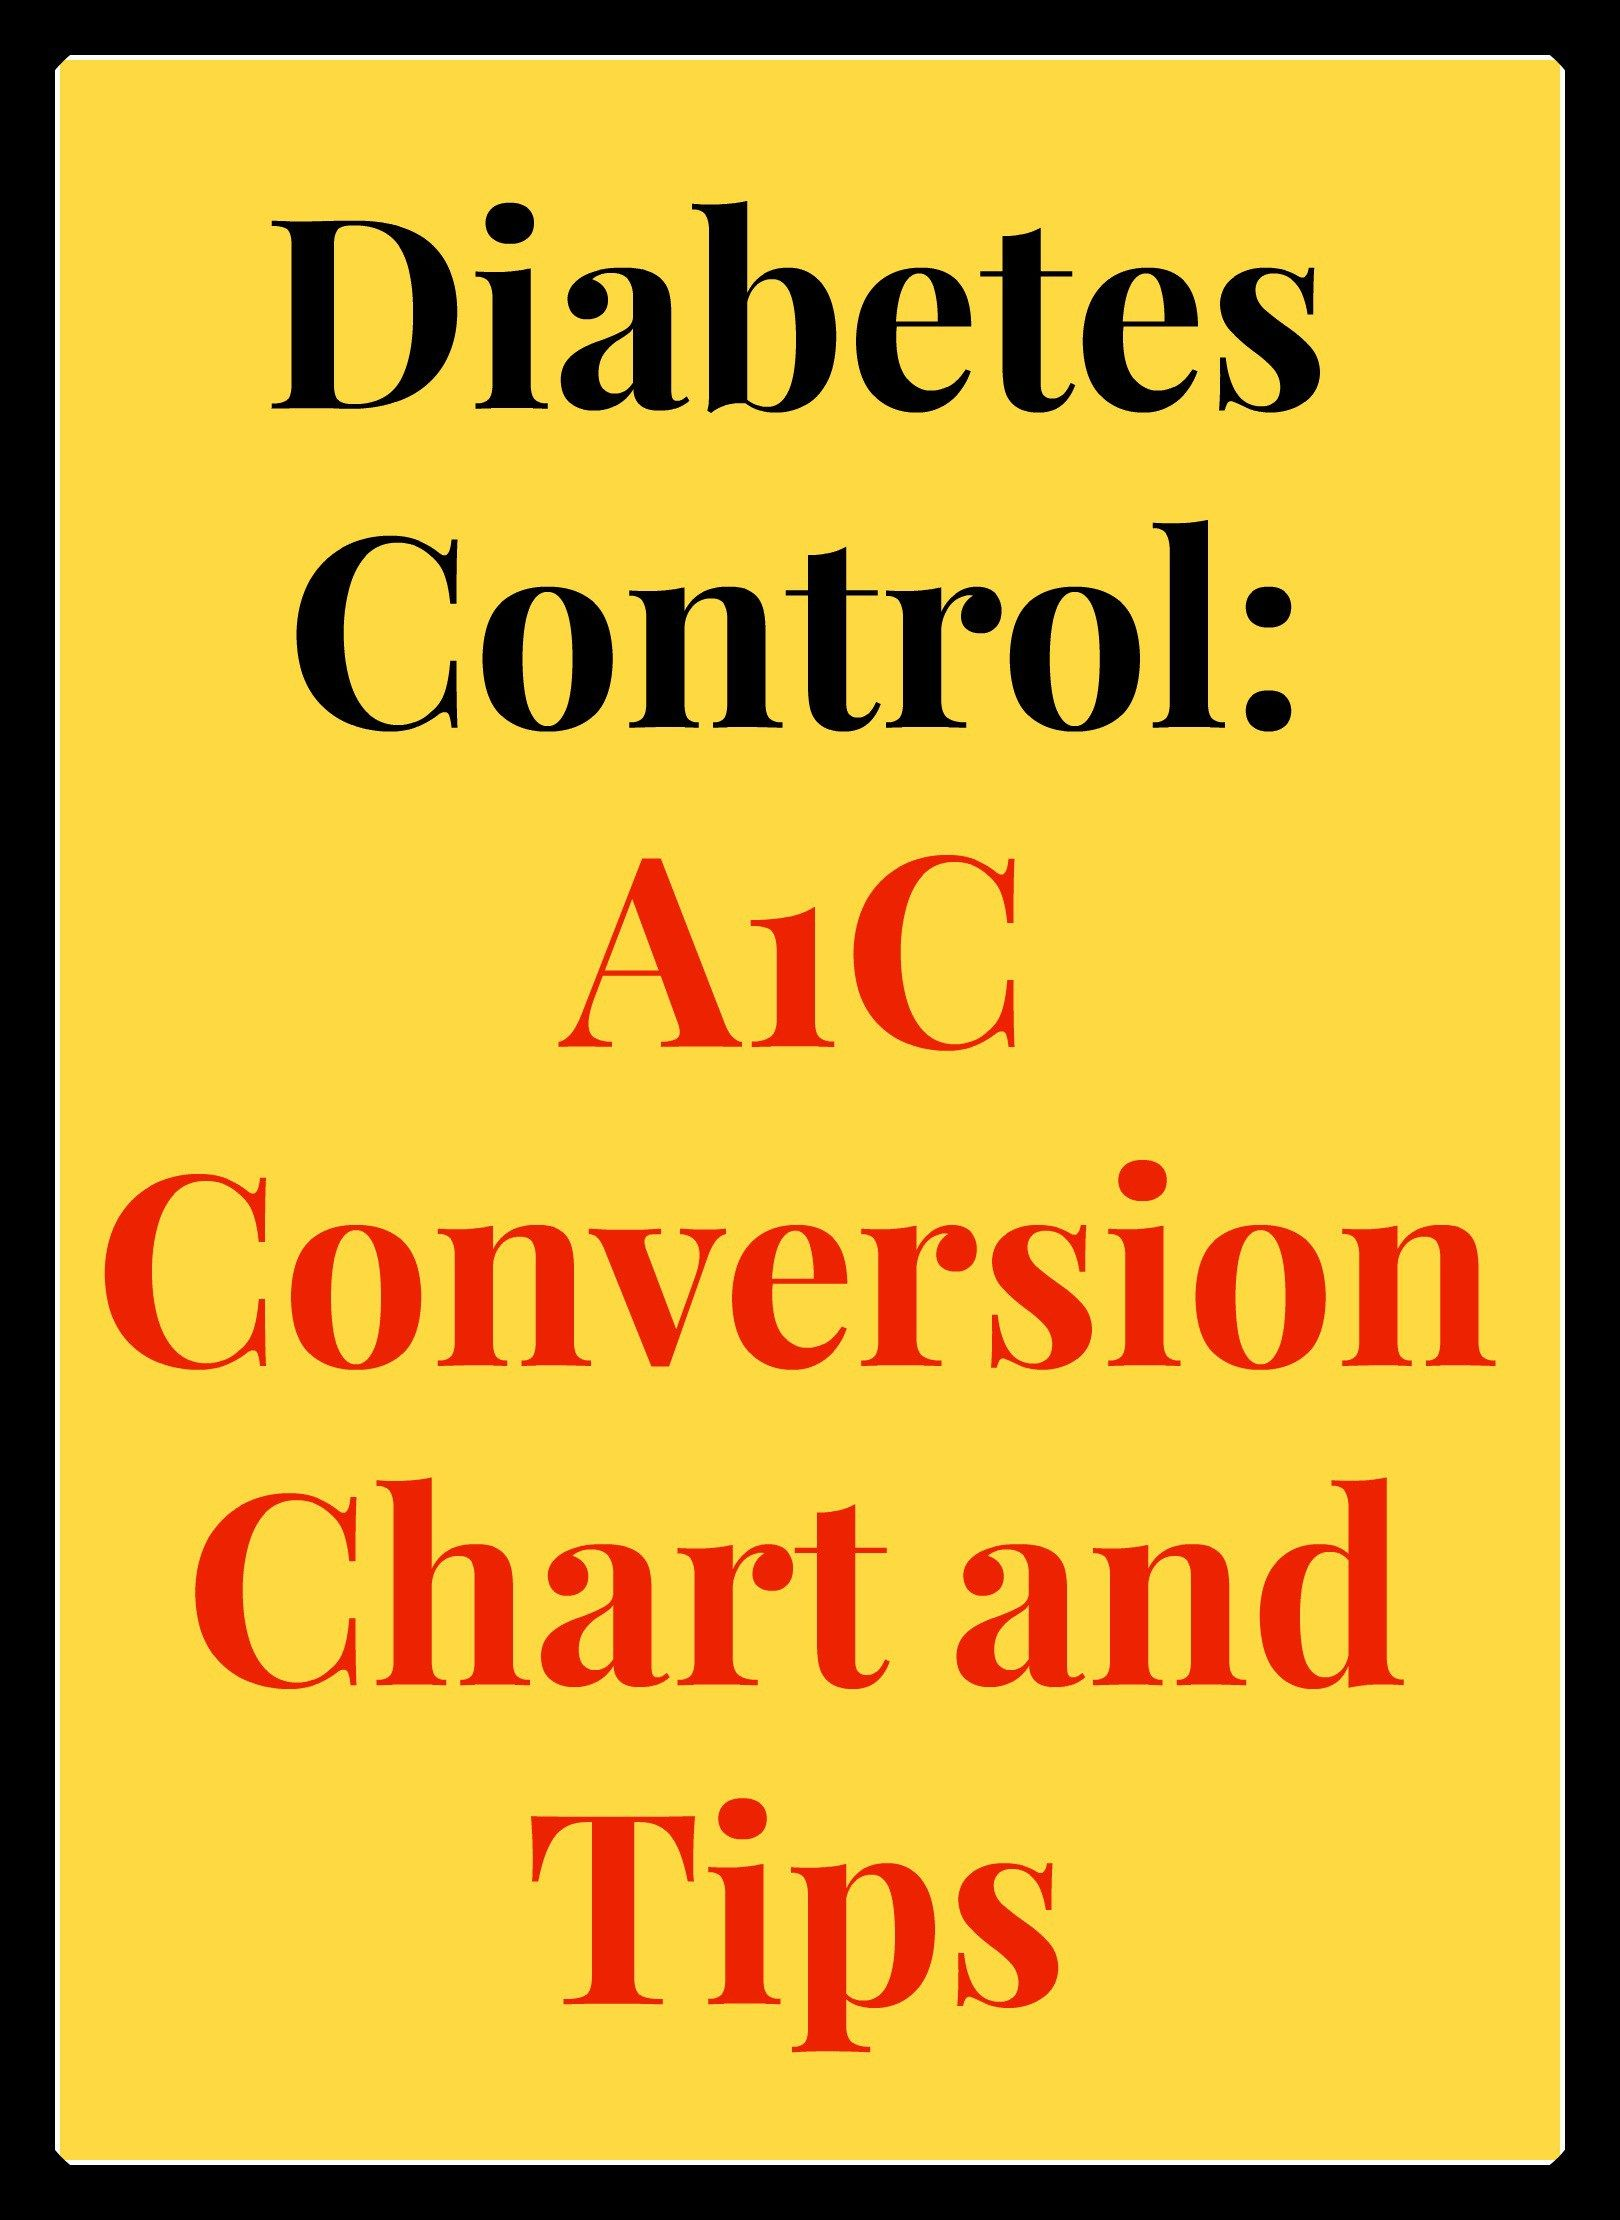 The use of low-carbohydrate diet in type 2 diabetes - benefits and risks.